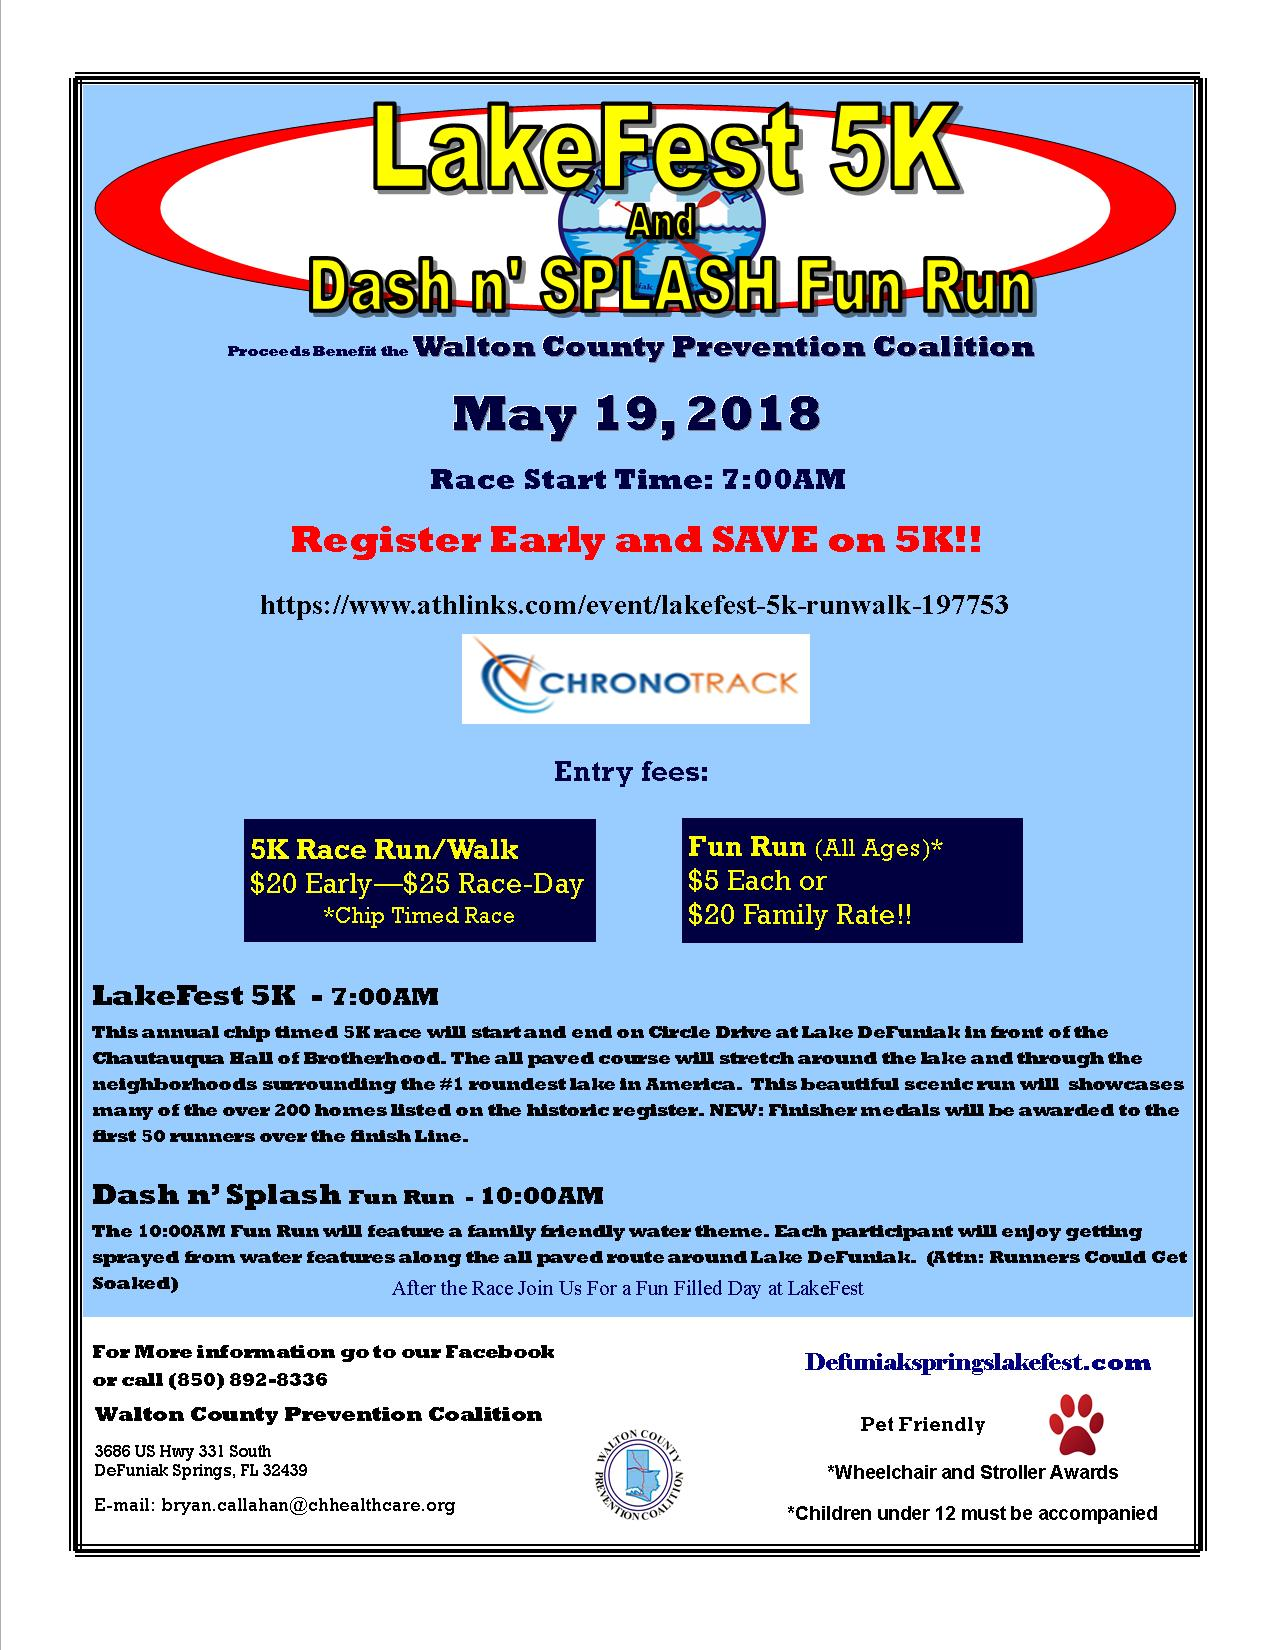 18 LakeFest 5K Flyer Registration Link